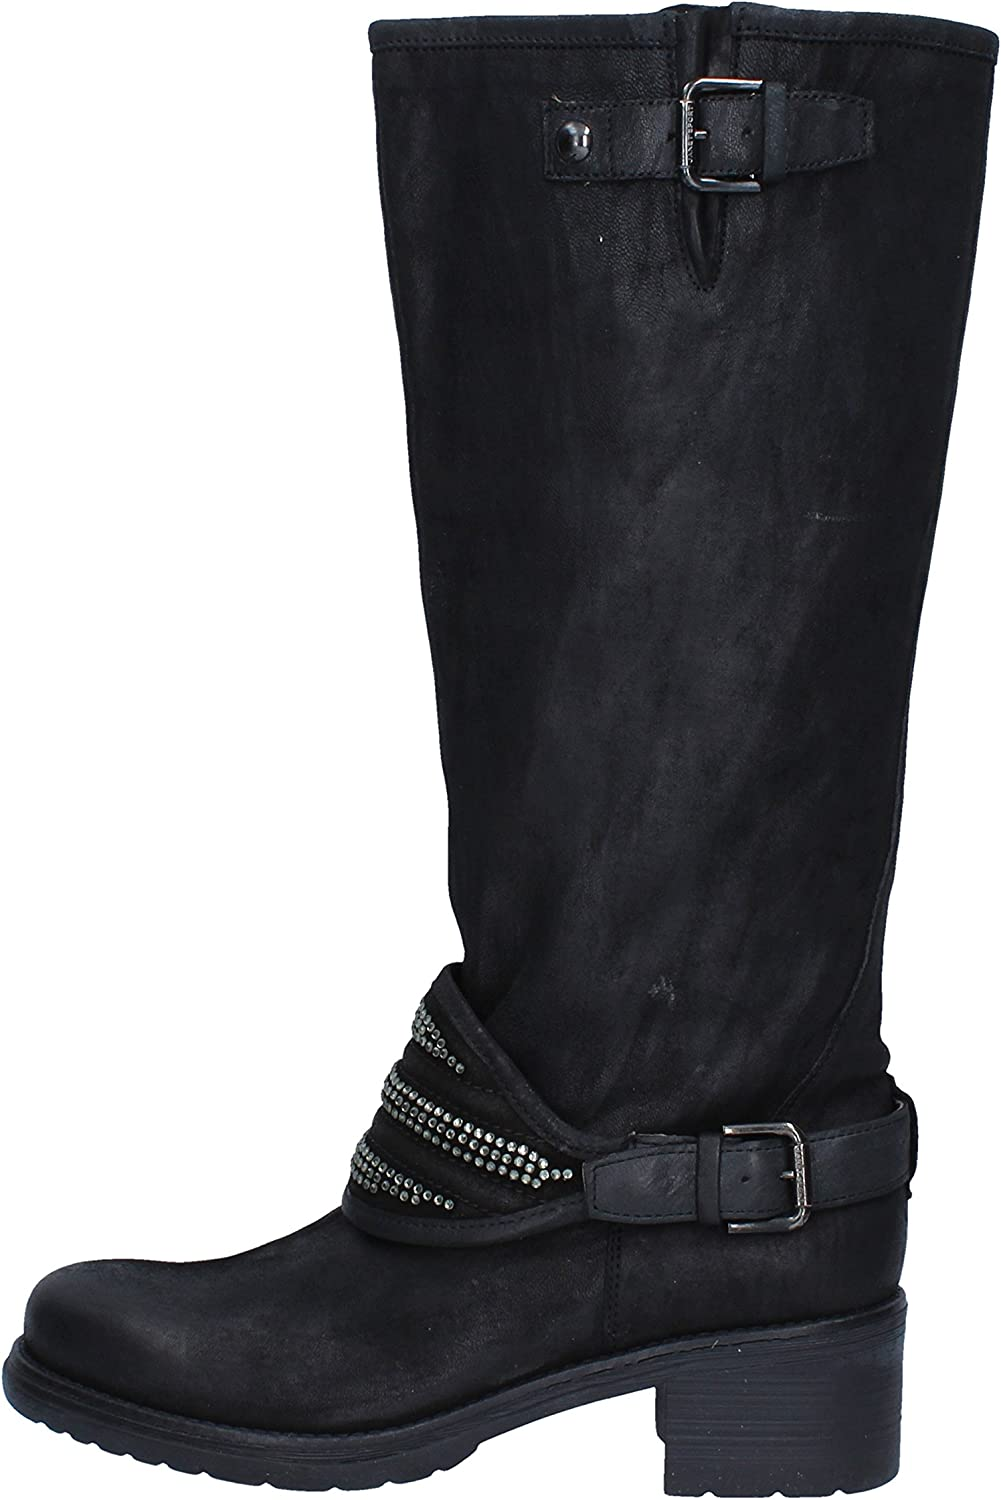 JANET SPORT Boots Womens Leather Black